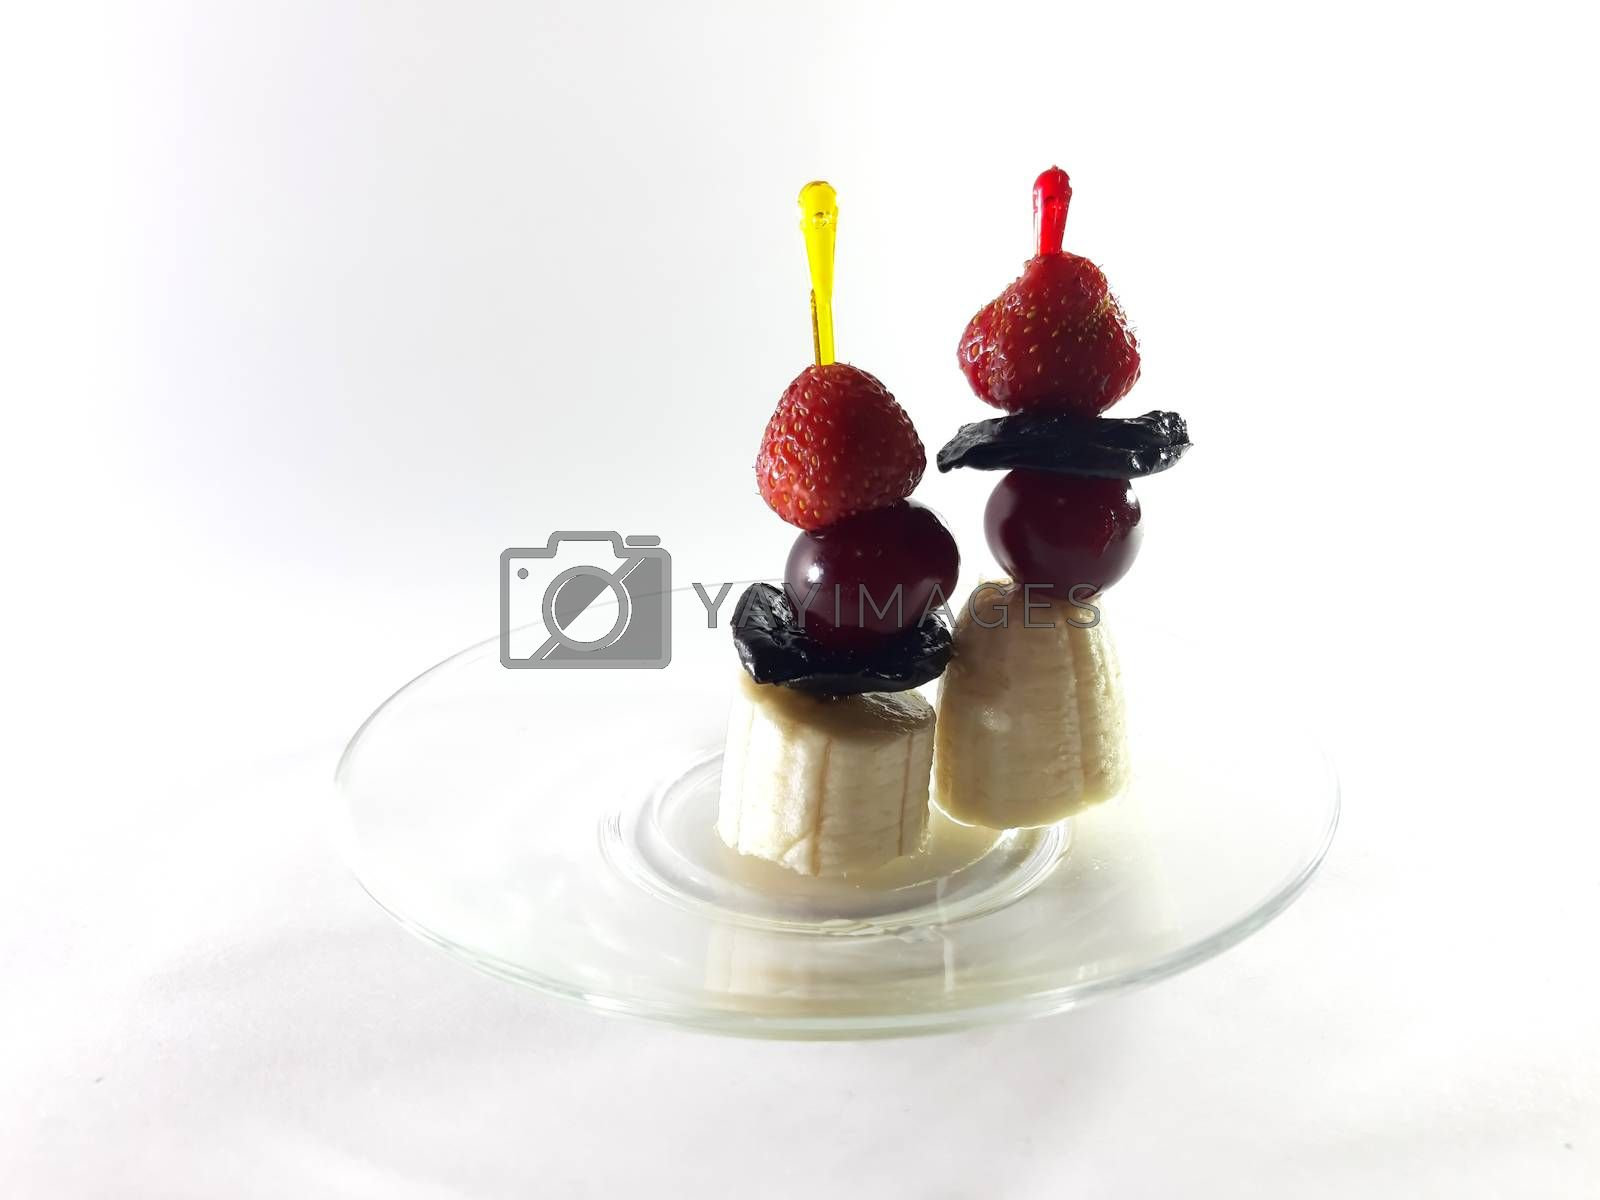 Dish for gourmet. Healthy food. Vegetarian foods on transparent plate. Berries and fruits. Lemon and cherry for a snack. Photo for modern design. Canapes made from bananas, strawberries and cherries.